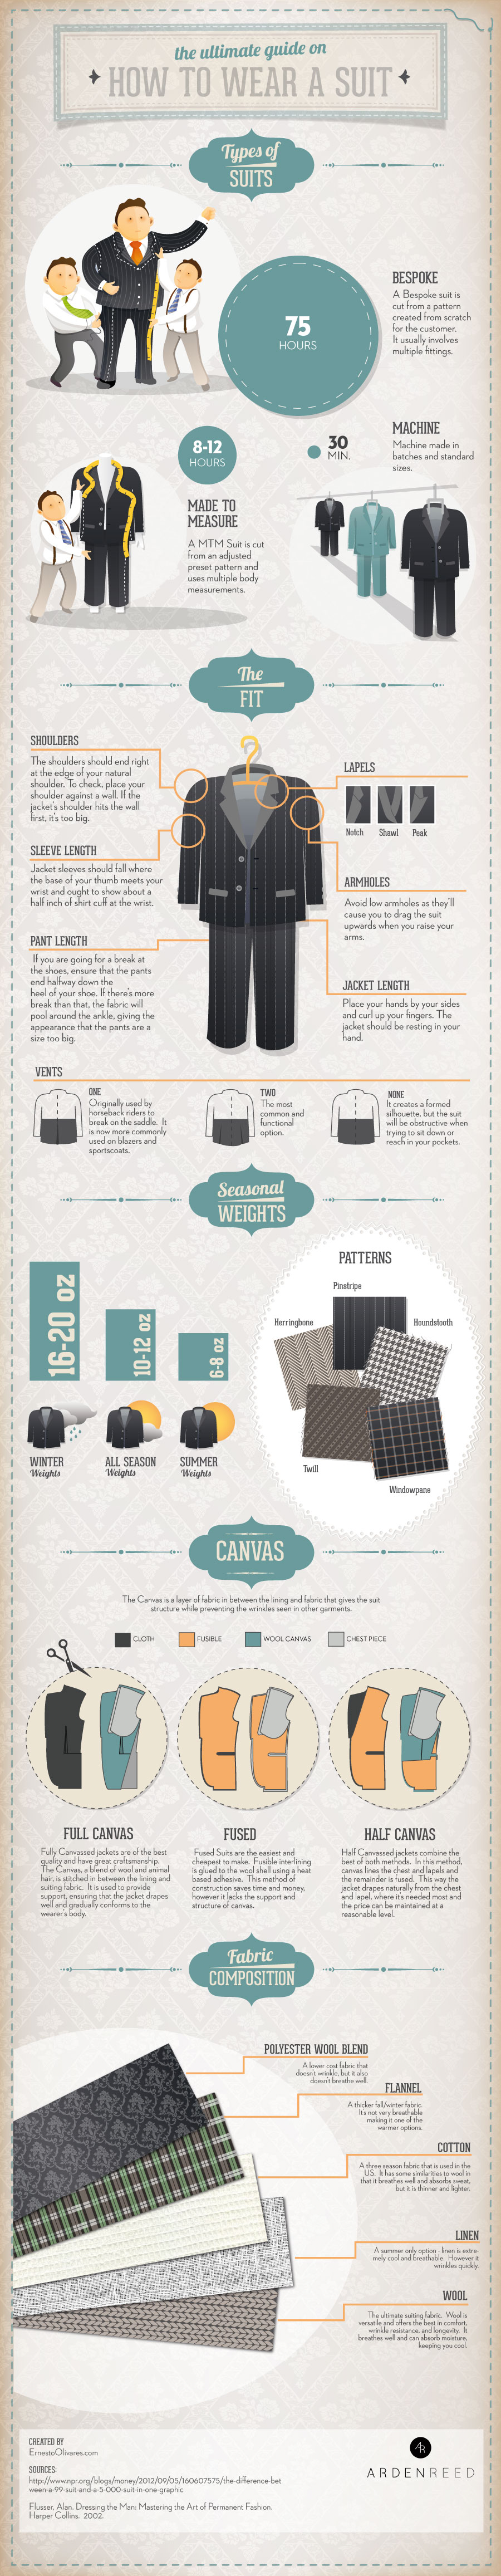 the-ultimate-guide-on-how-to-wear-a-suit_50d0972546f5d